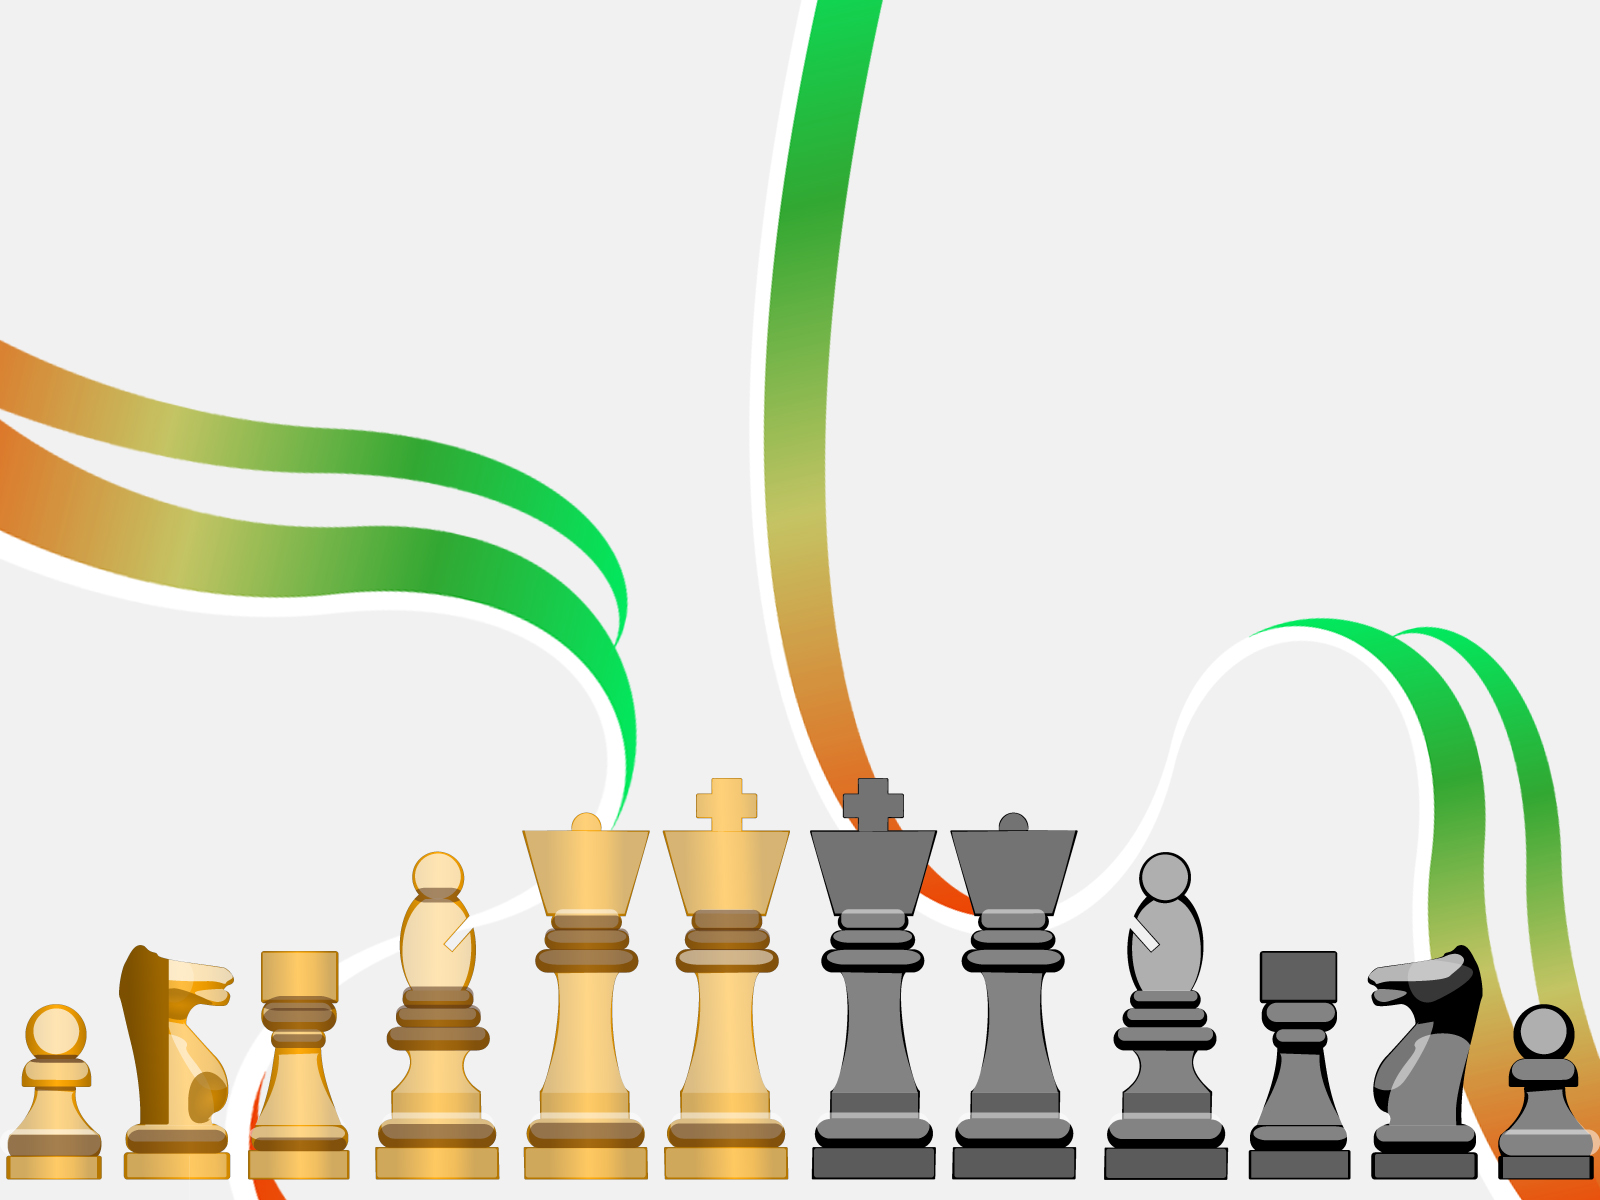 tv game show powerpoint templates - chess figures for games backgrounds educational games